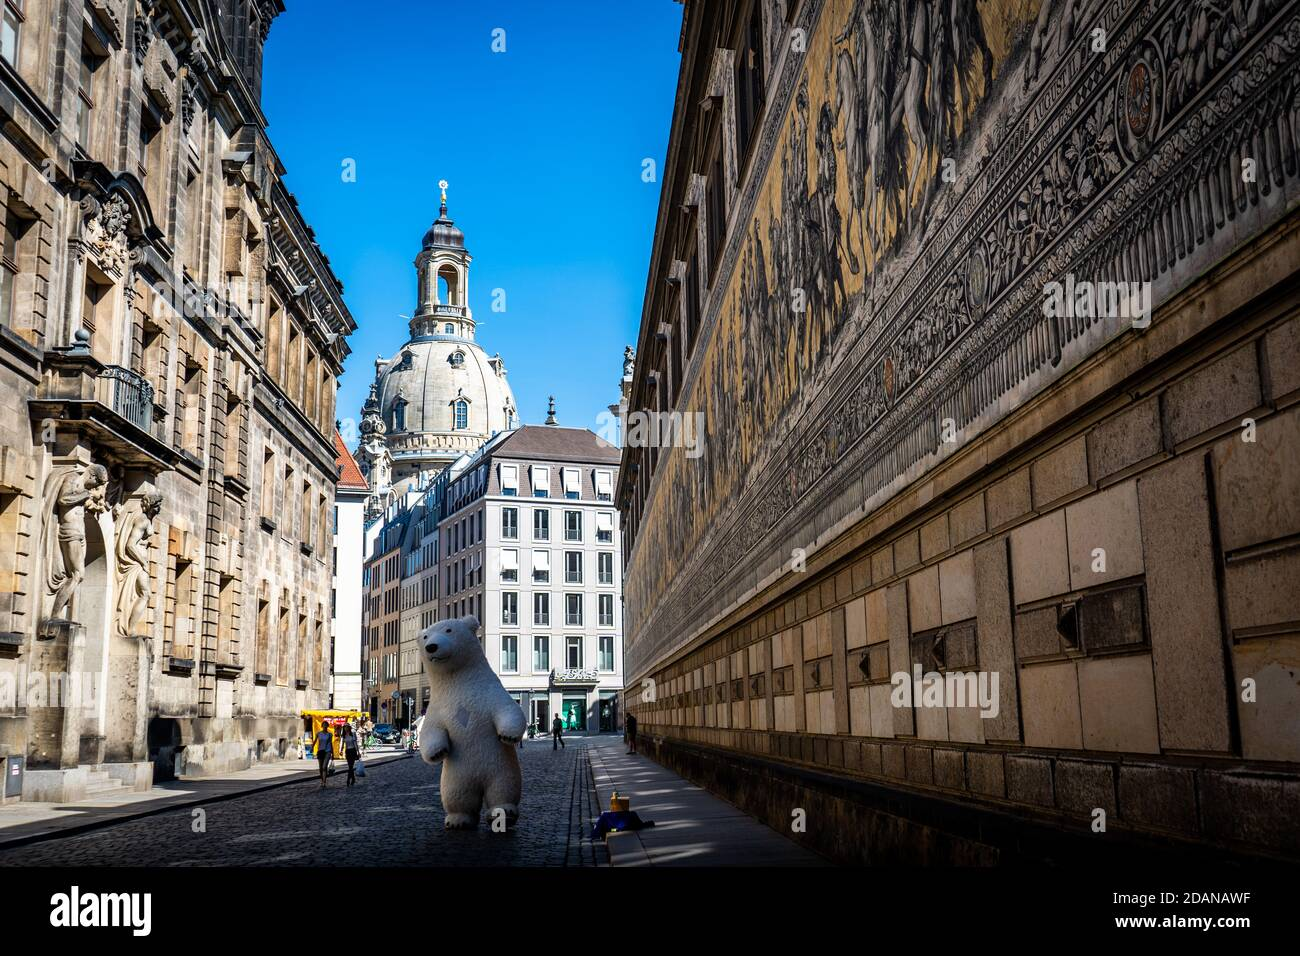 Prince procession in Dresden with Frauenkirche Stock Photo